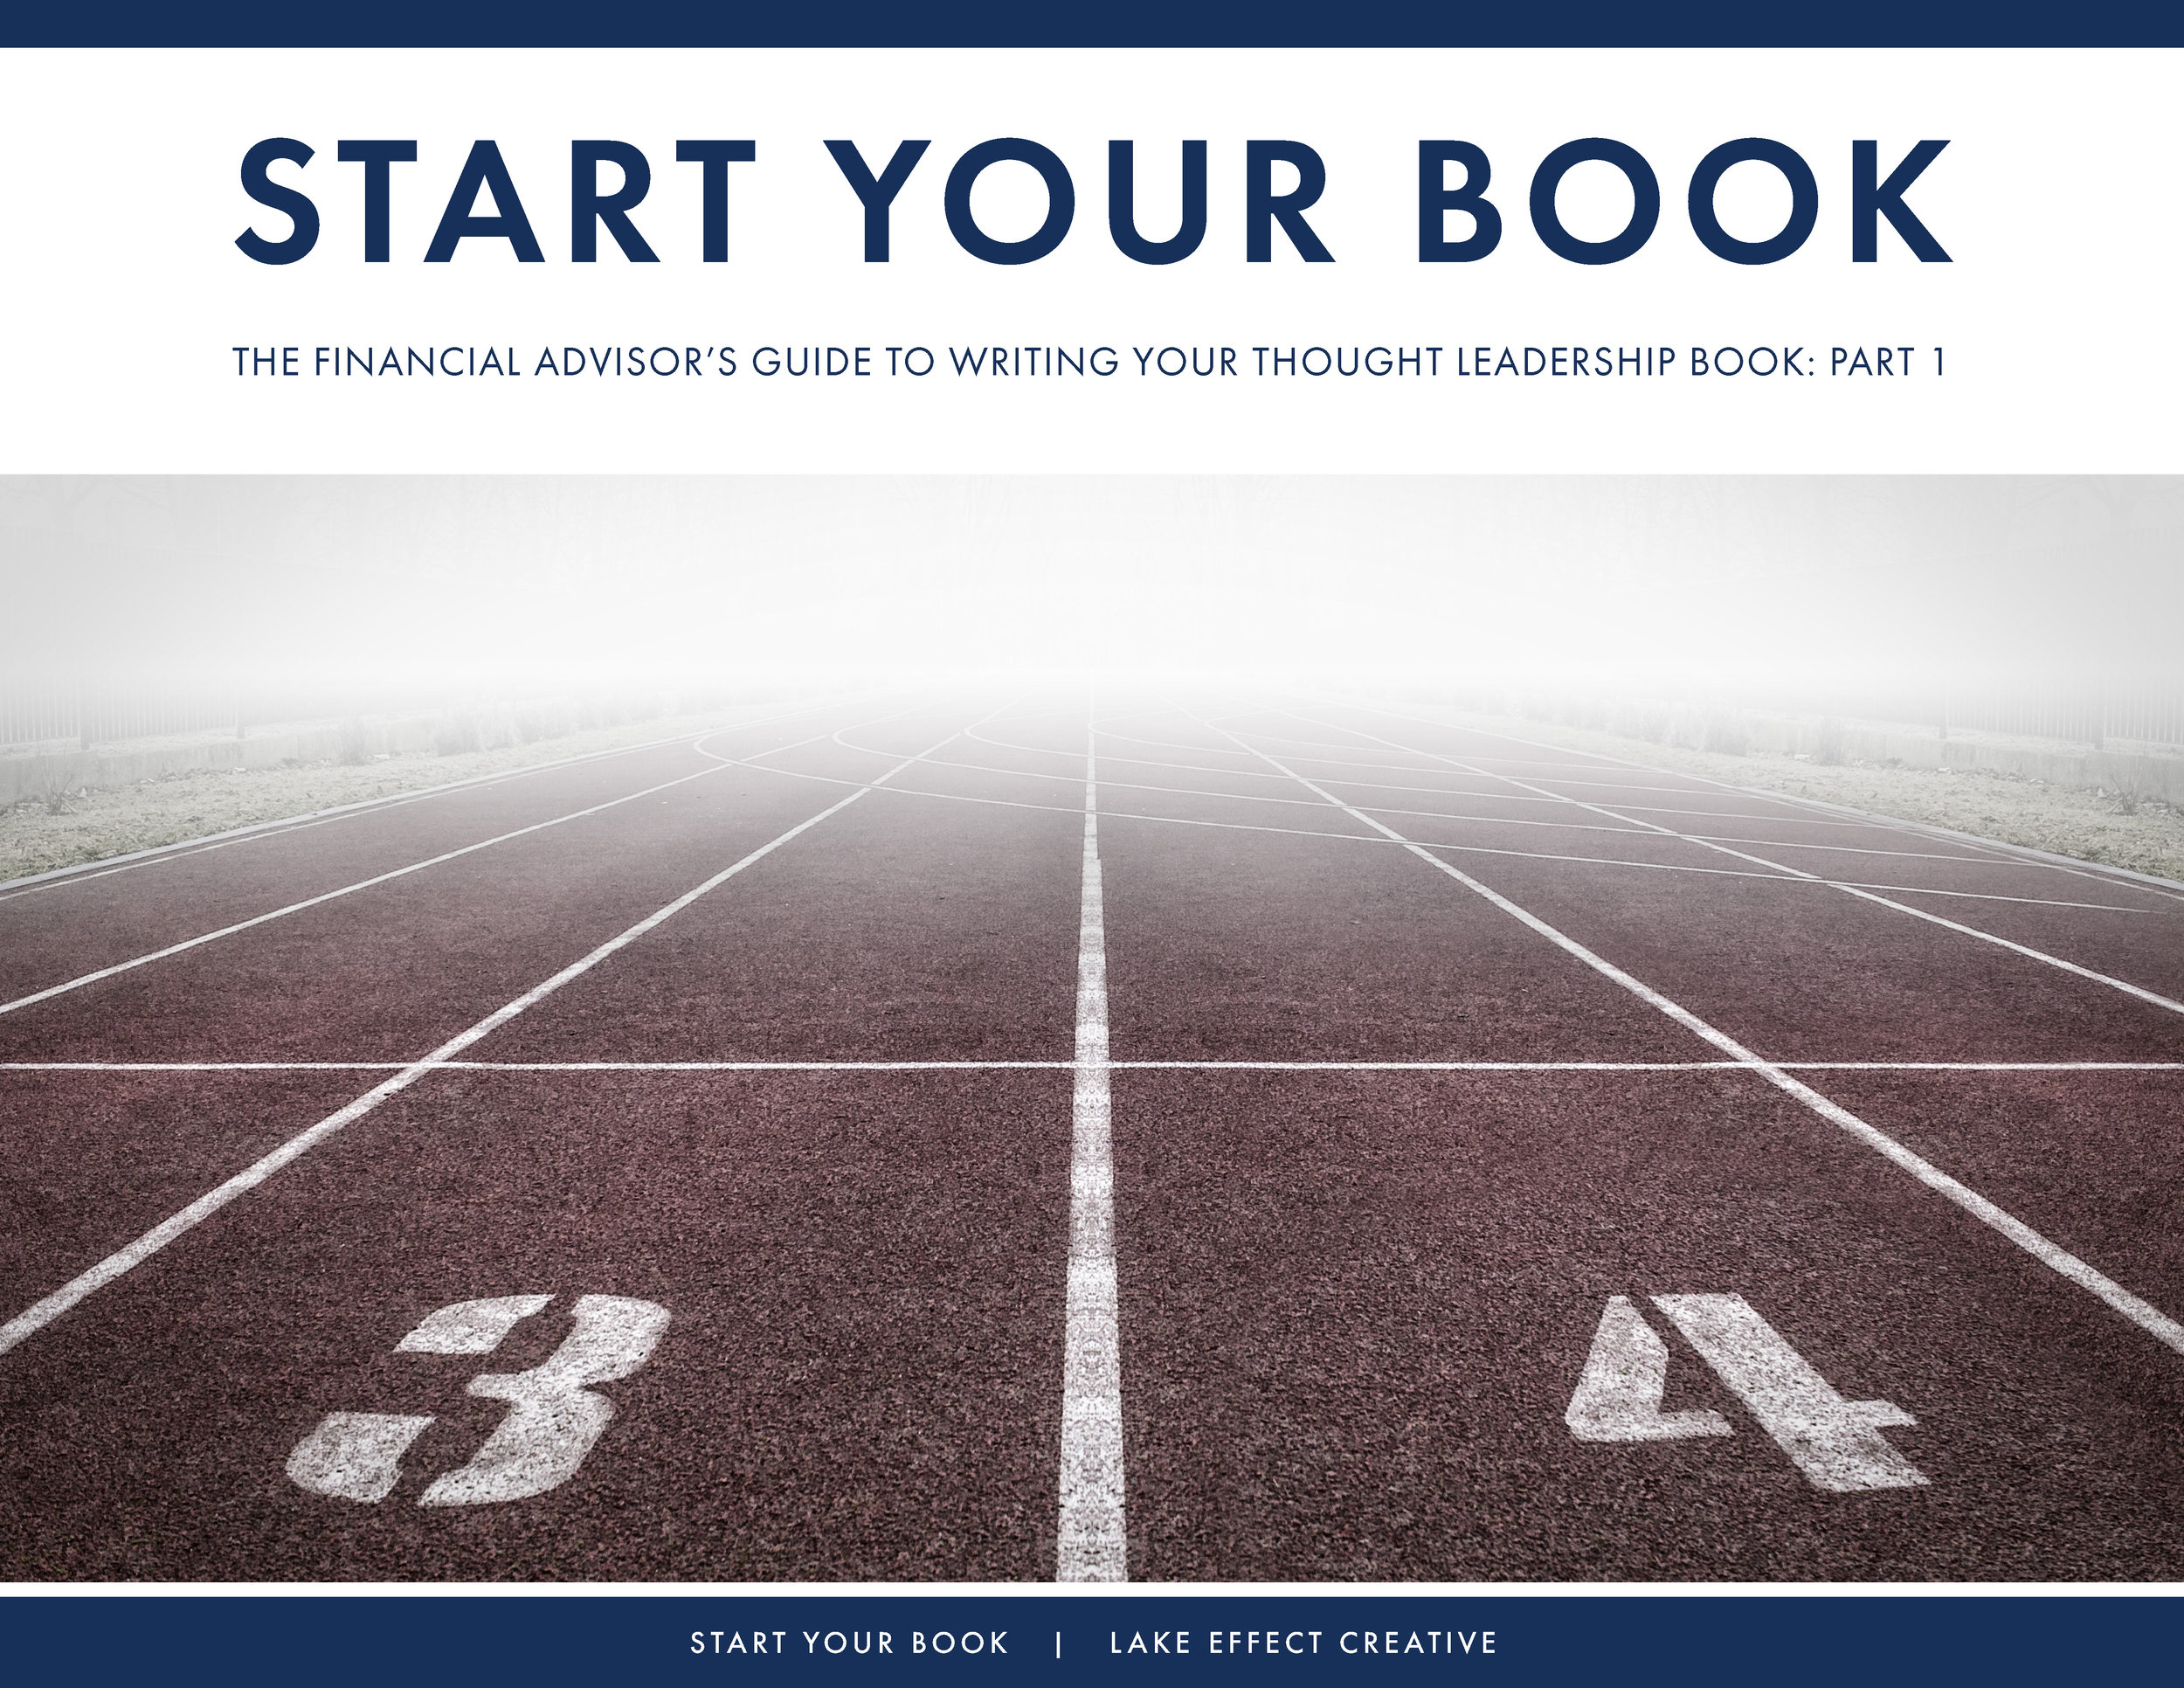 Start Your Book